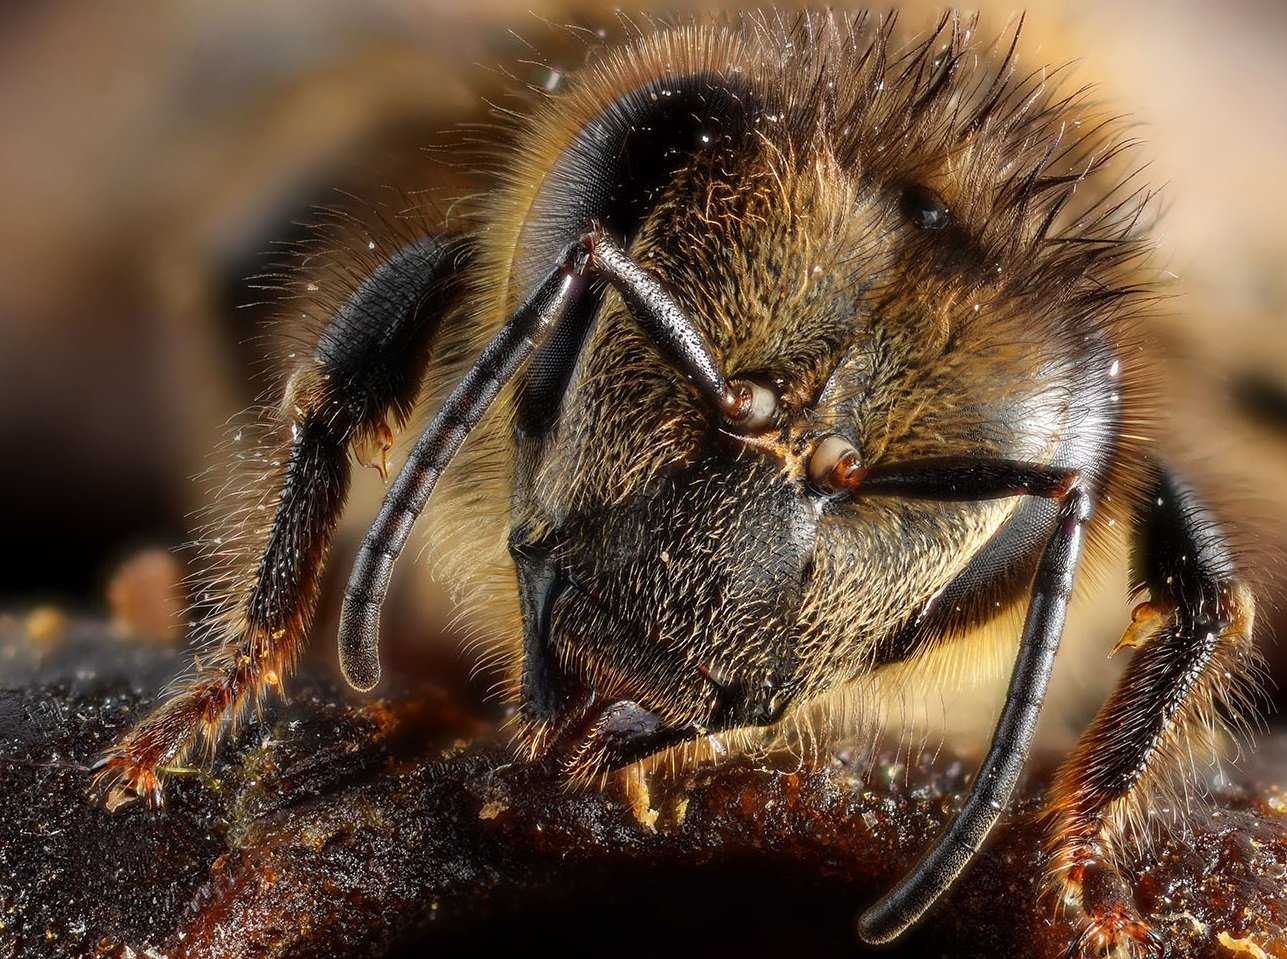 Understanding the way bees and ants communicate might make it easier to protect them in the future.